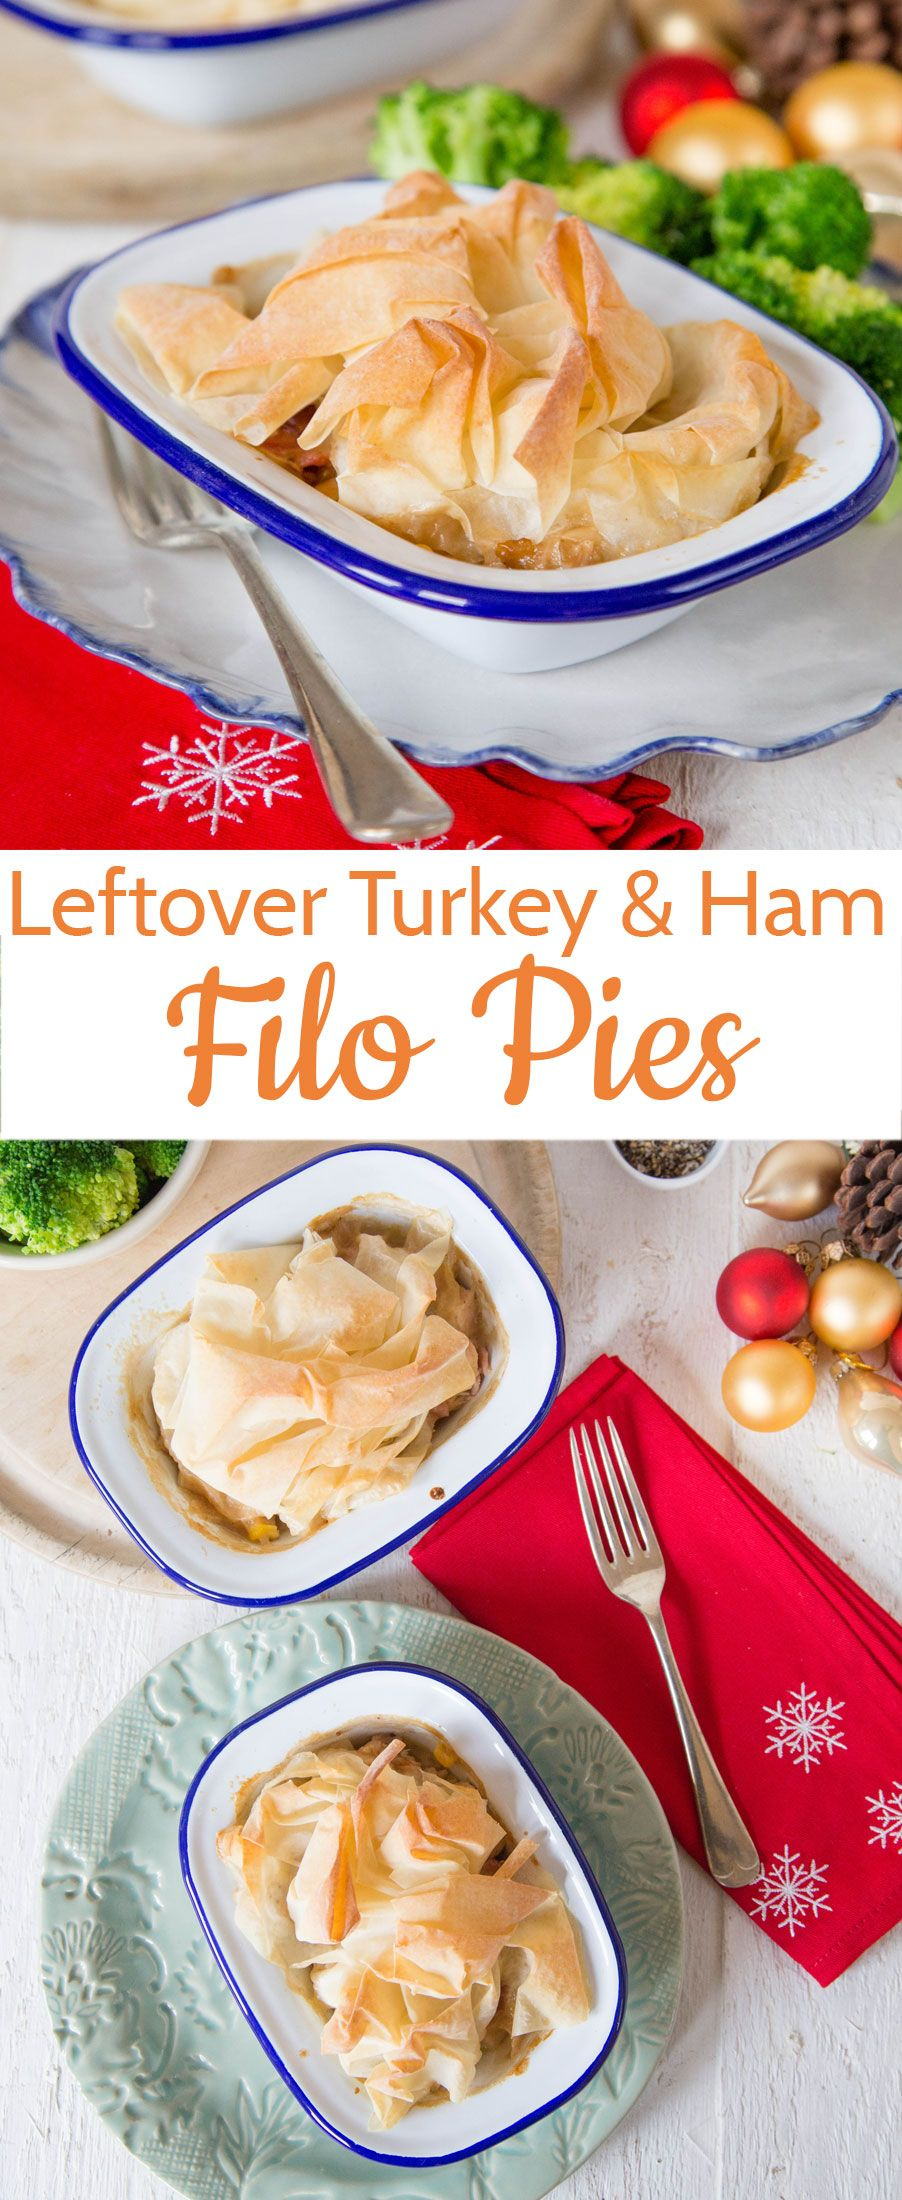 Leftover Turkey & Ham Pies, with a filo crunch   Recipe   Turkey, ham pie, Food recipes, Ham pie